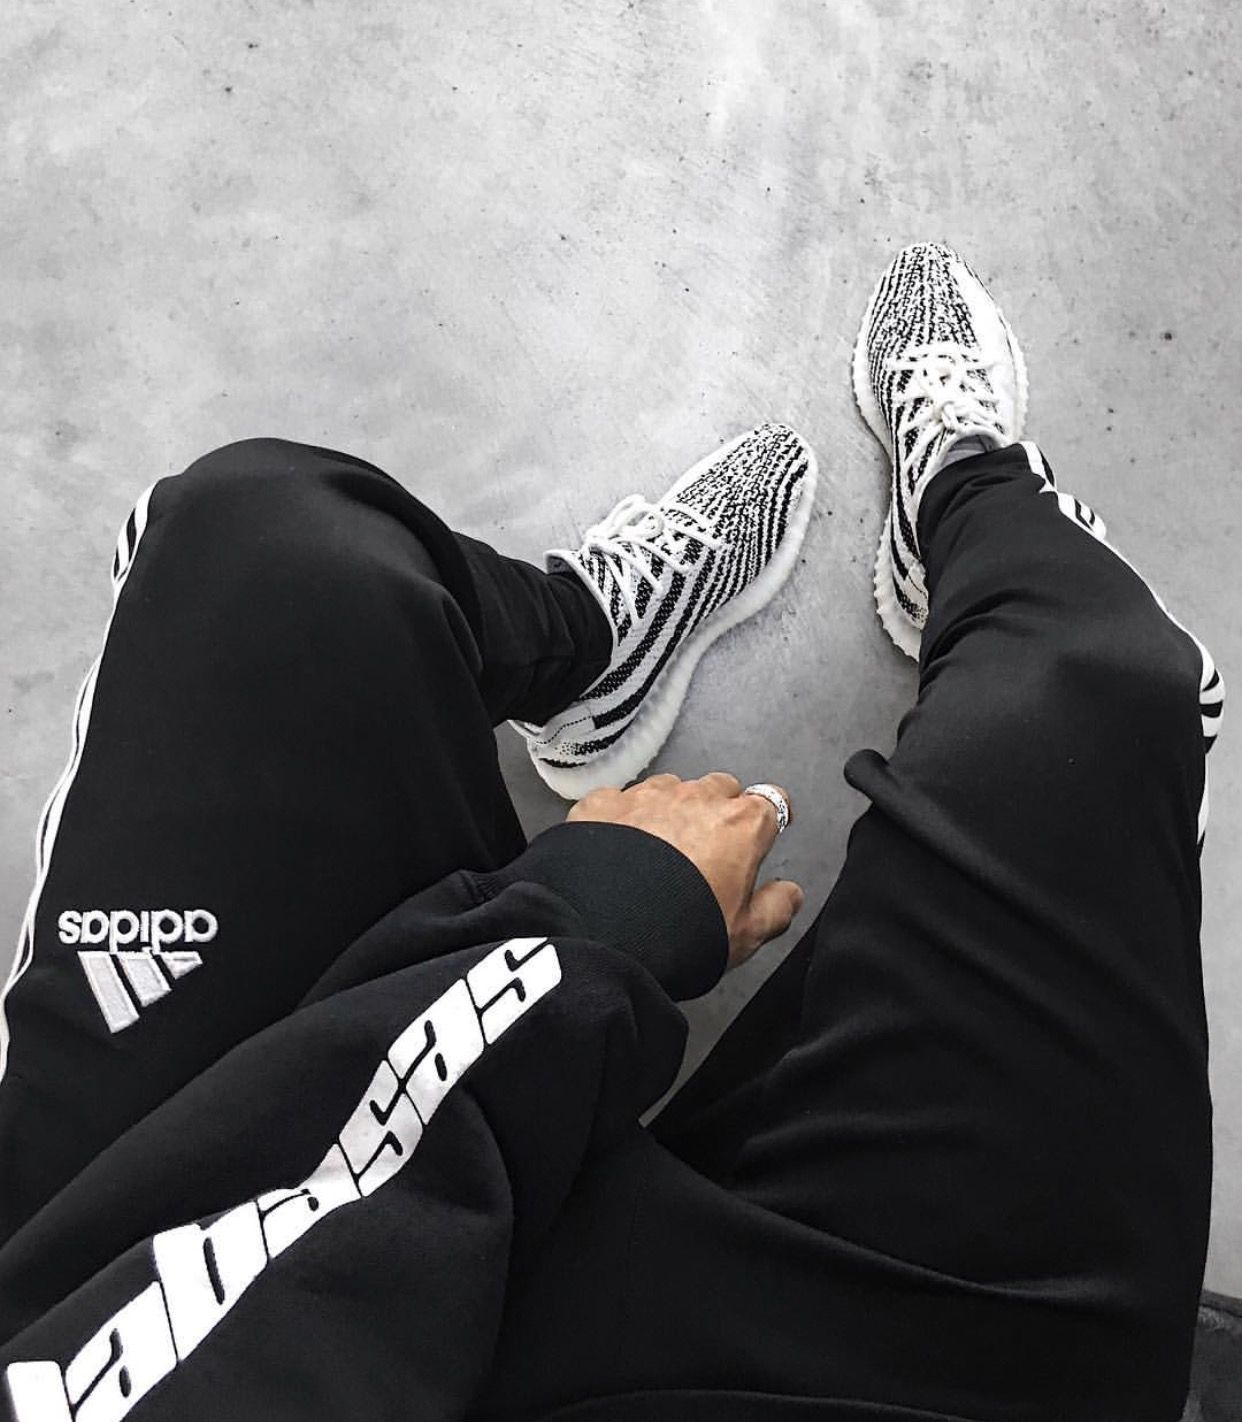 huge discount 211c0 917ab Adidas Yeezy Boost 350 V2 Zebra with long sweatpants Calabasas sweater.